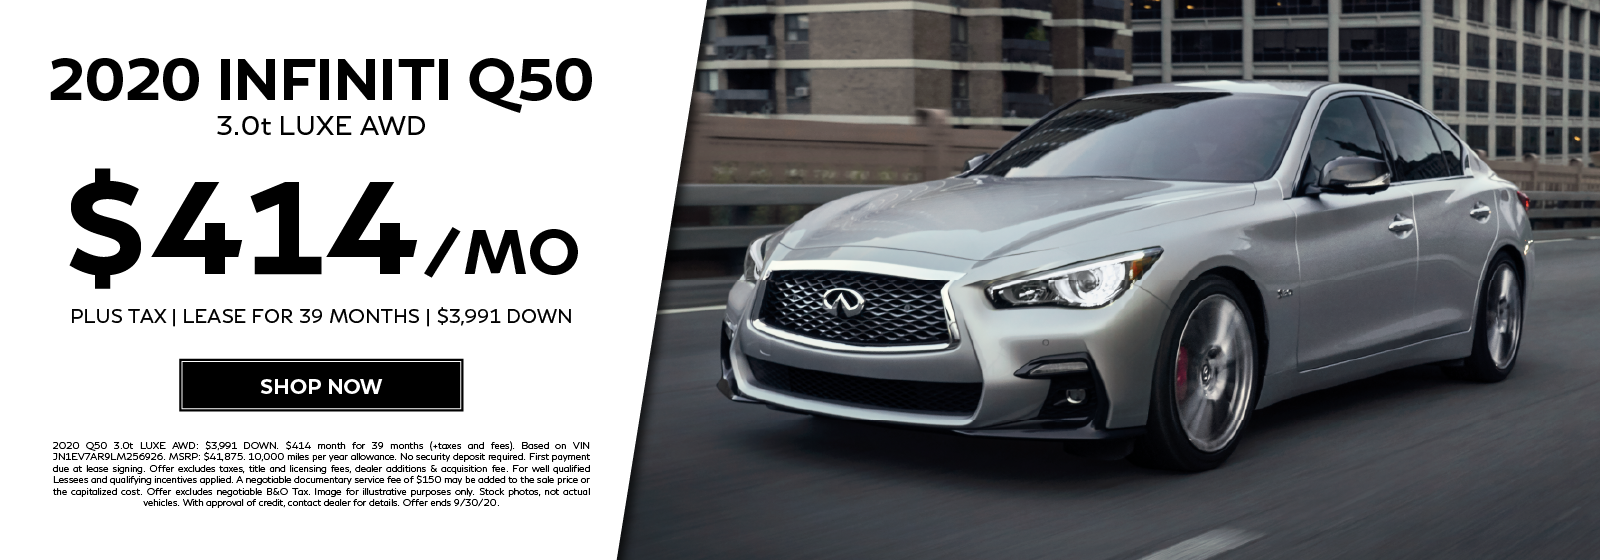 Lease a 2020 Q50 3.0t LUXE AWD for $414 per month for 39 months. Click to shop now.